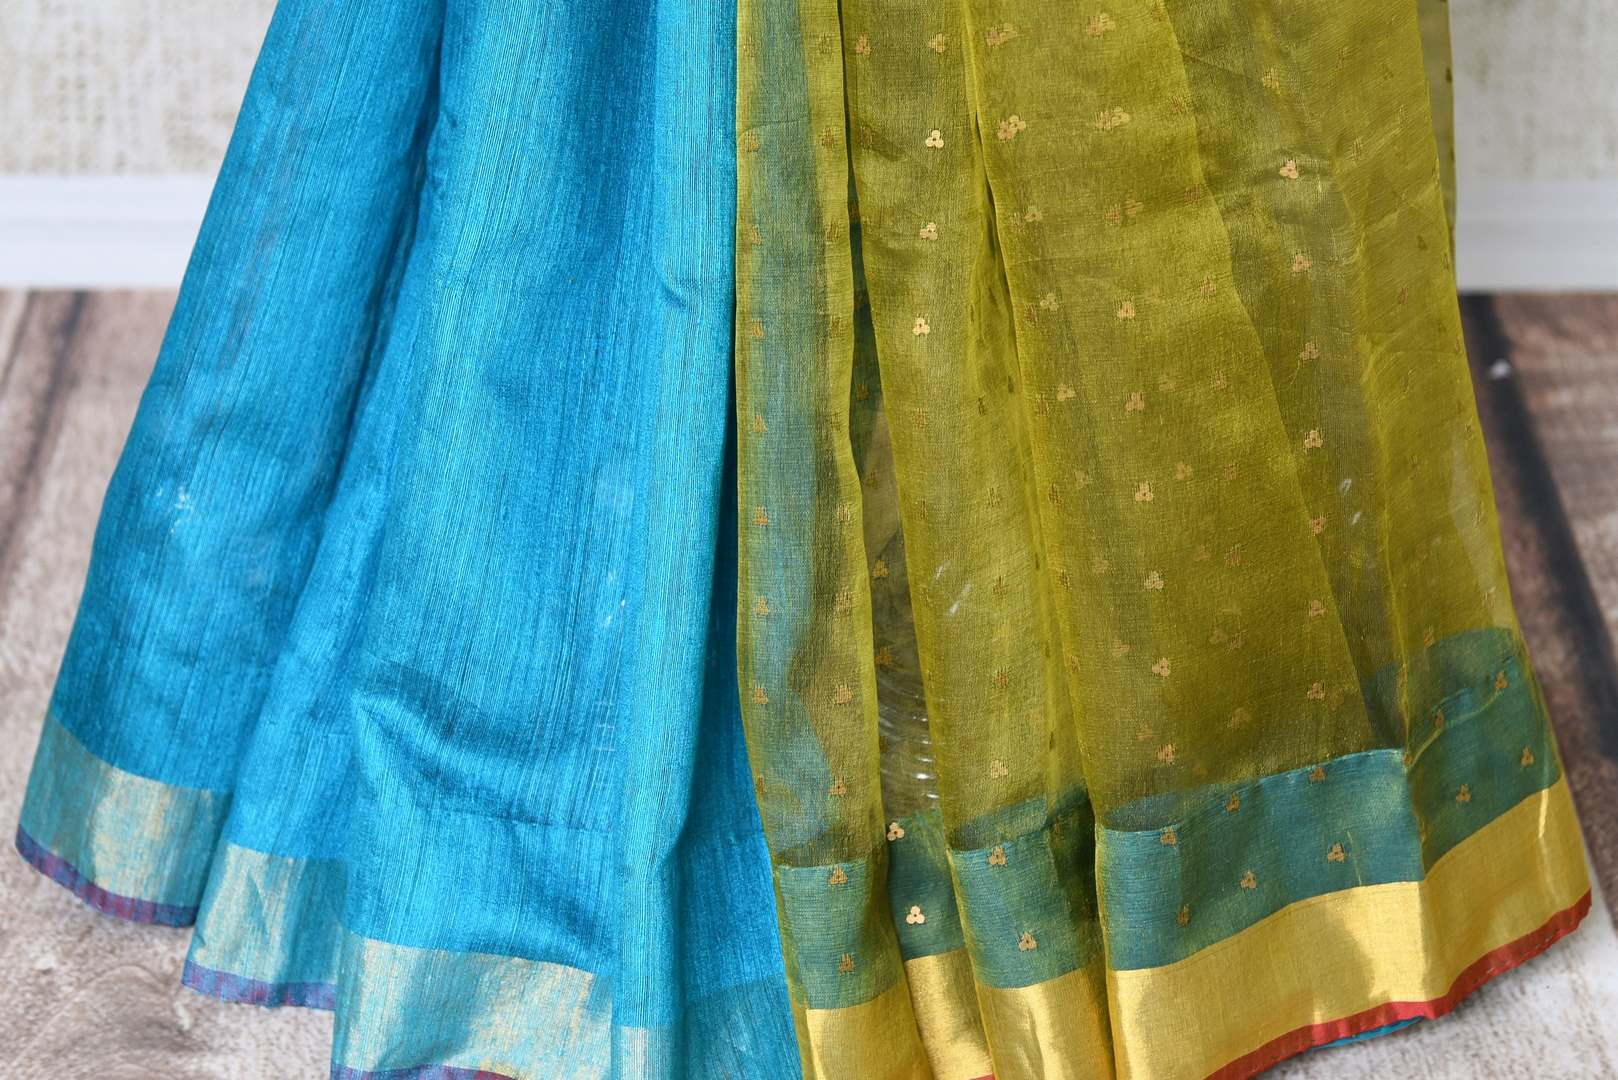 Buy blue and green woven matka silk saree online in USA with printed sari blouse. Make every occasion special with beautiful Indian designer sarees, handloom sarees, wedding saris from Pure Elegance Indian fashion store in USA. You can also browse through our website and shop online.-pleats